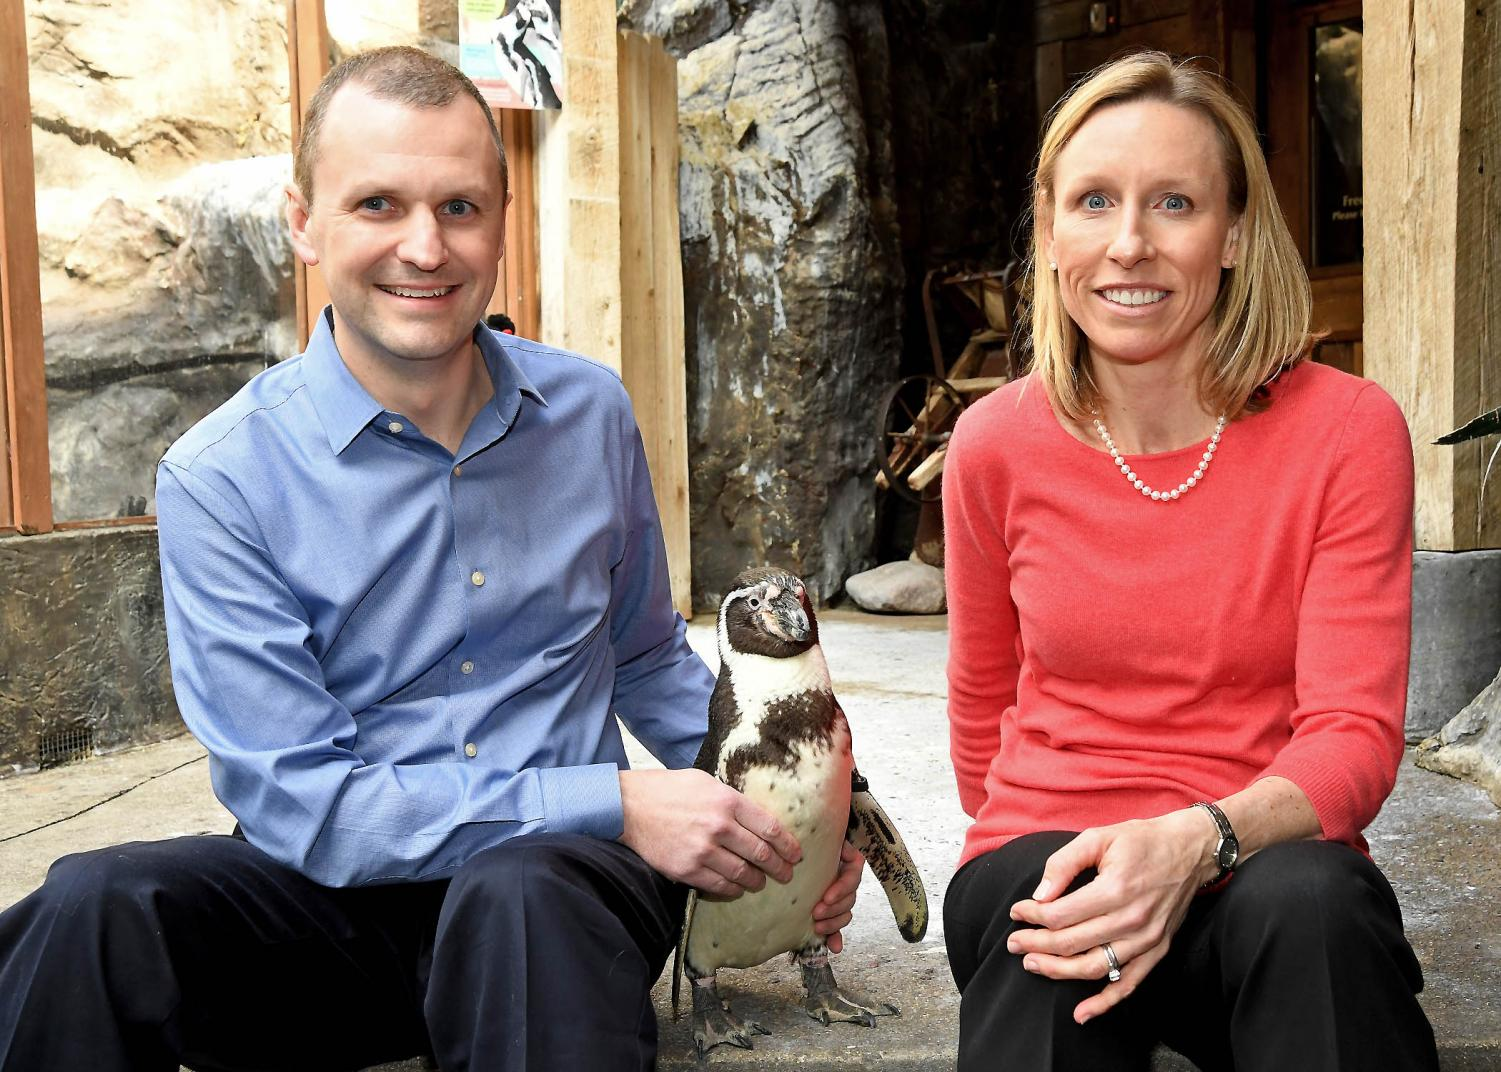 Mike Adkesson and Jen Langan sit with a Humboldt penguin named Pepe, who resides in Brookfield Zoo's Living Coast habitat. The UI alumni are working to save the penguins.